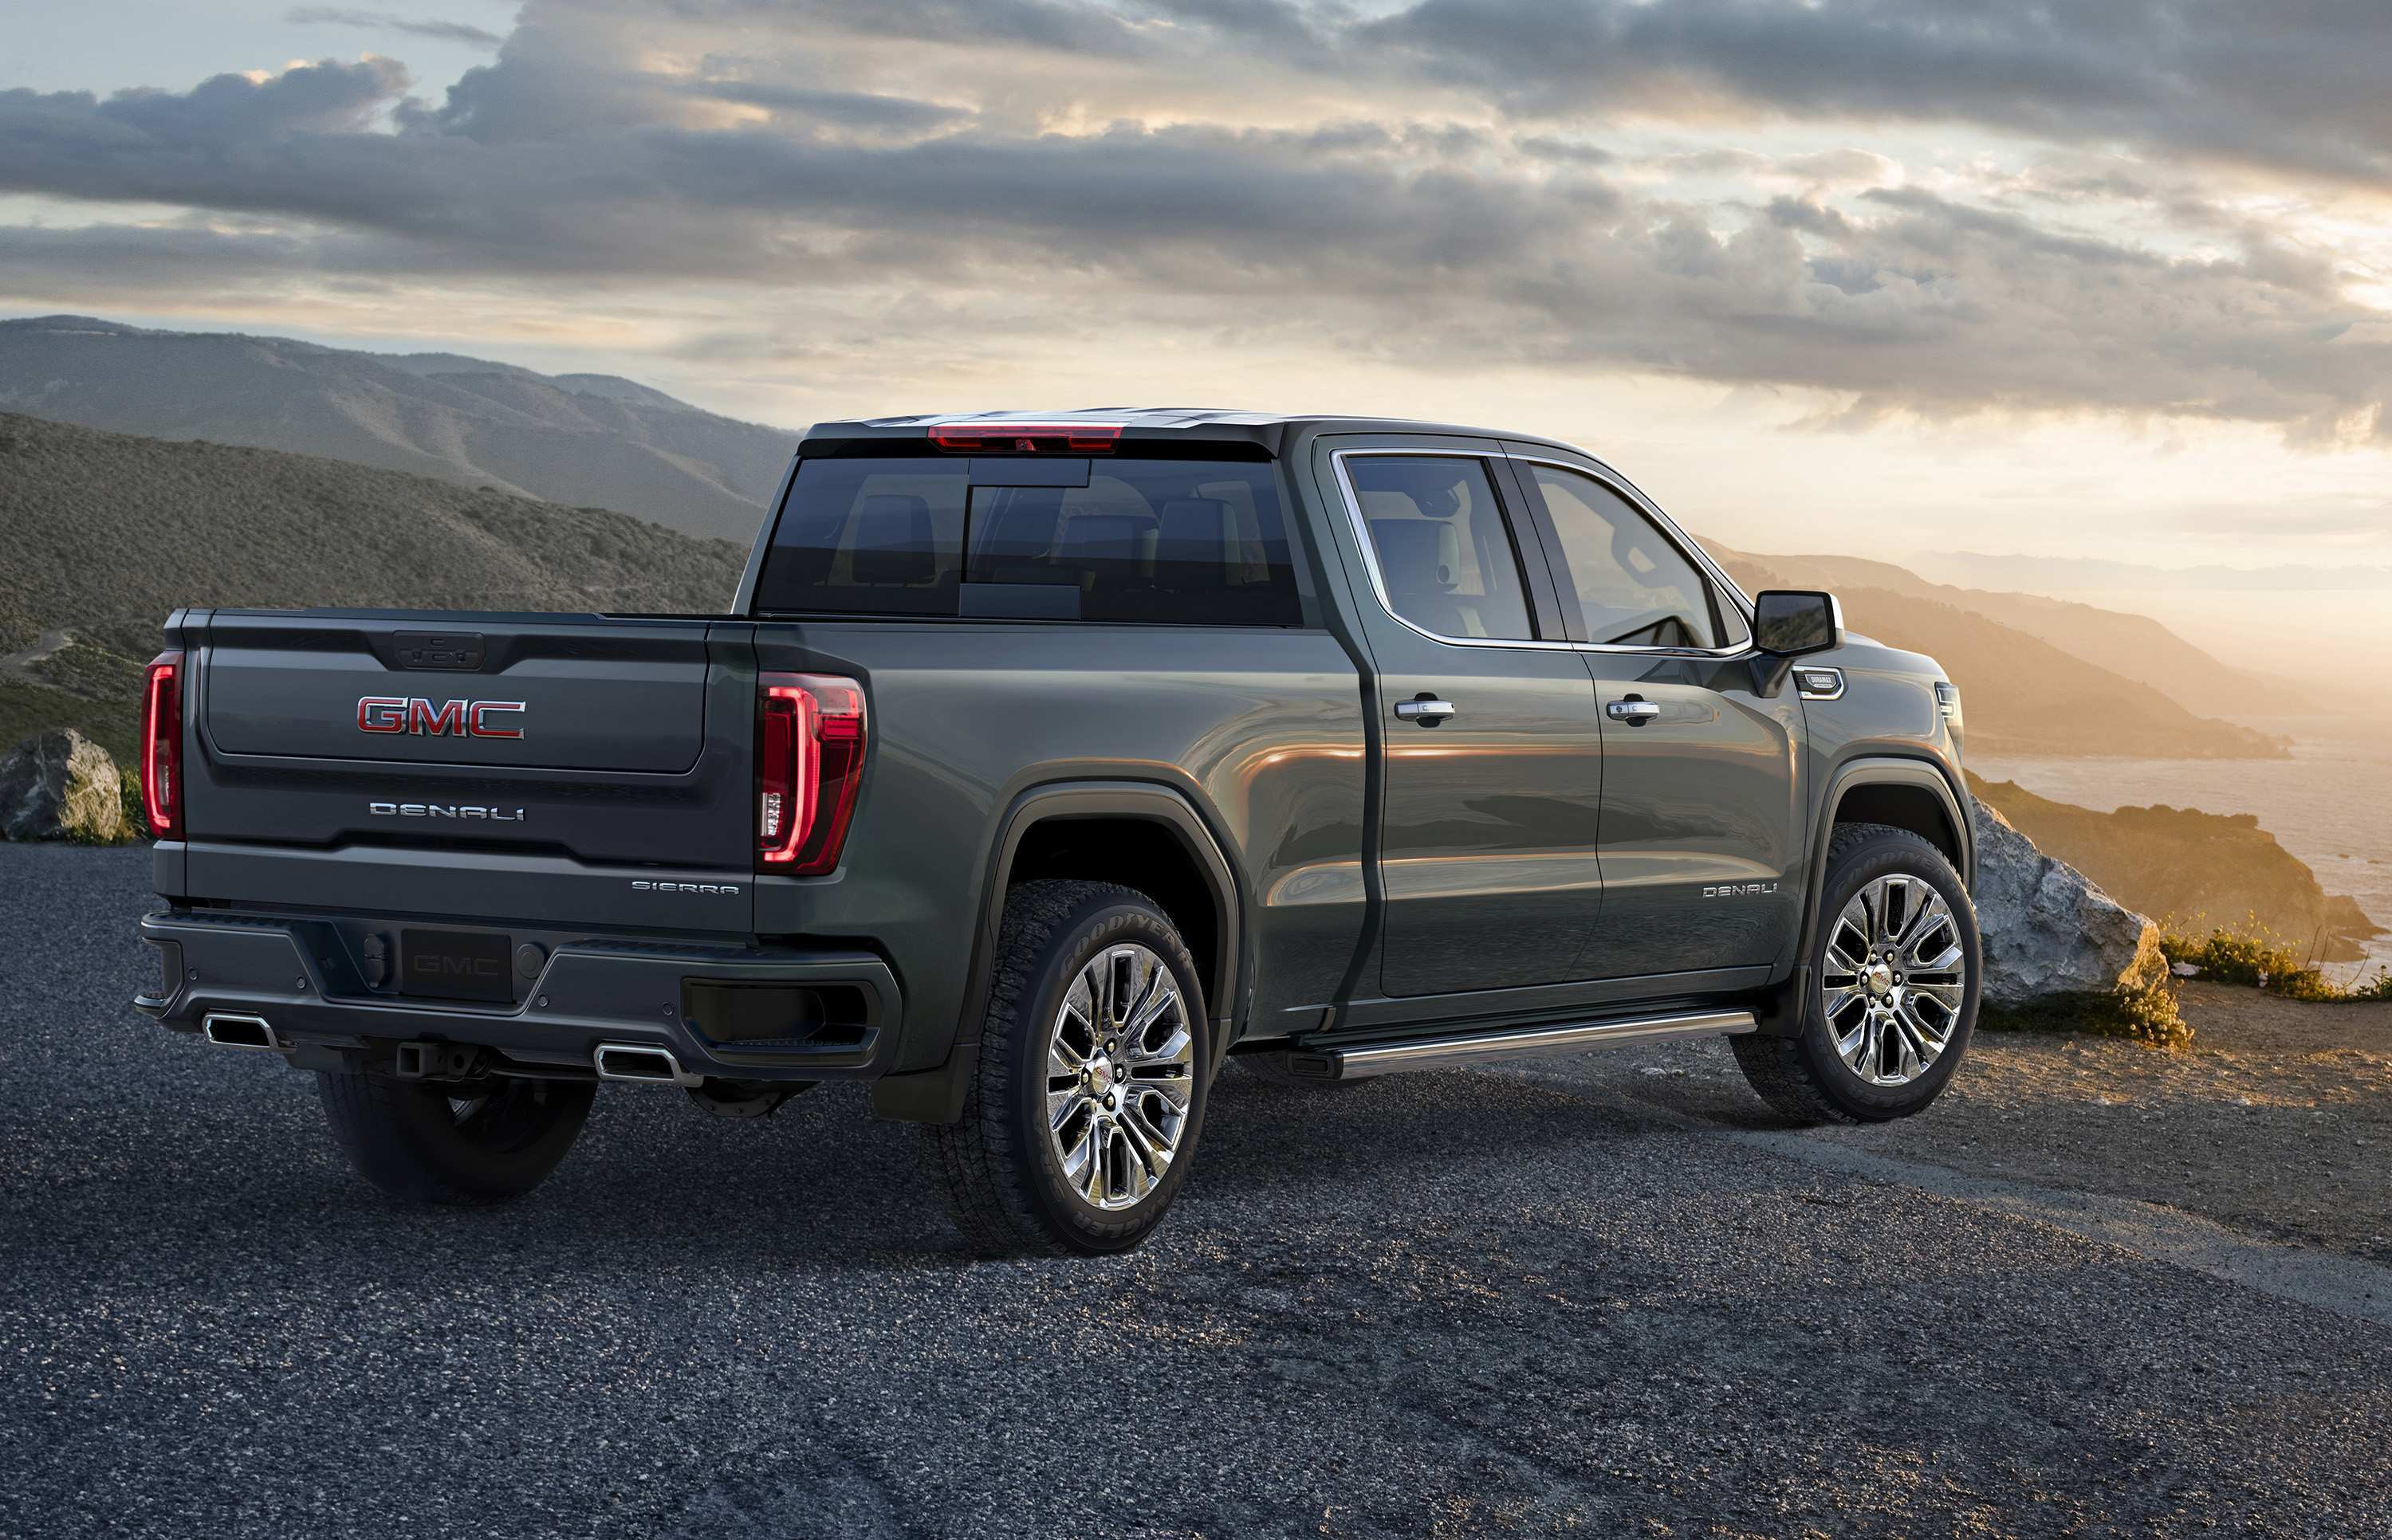 17 All New 2019 Gmc 1500 Tailgate Images for 2019 Gmc 1500 Tailgate